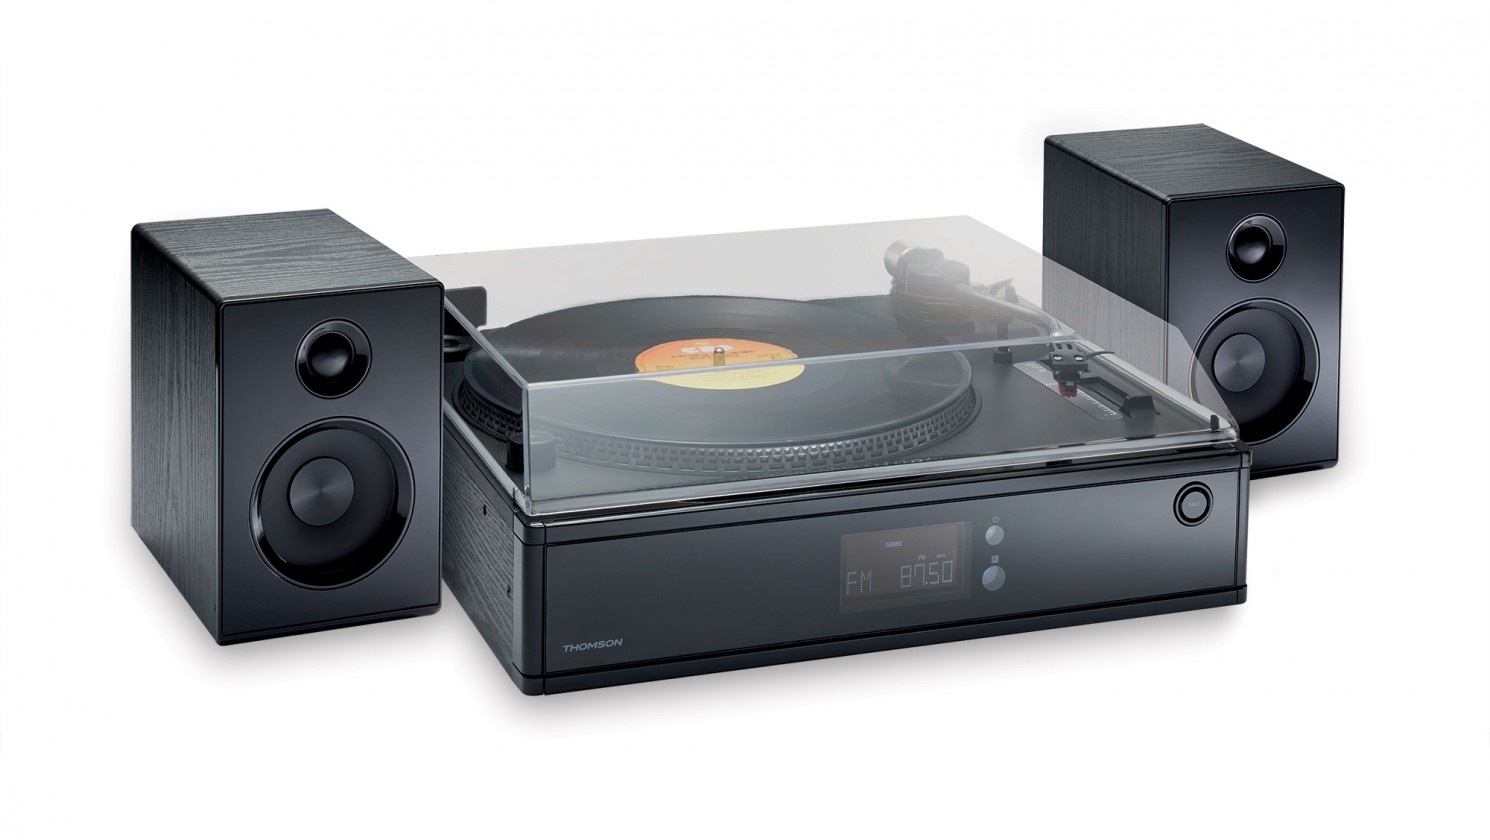 Gramofon Thomson TT500CD